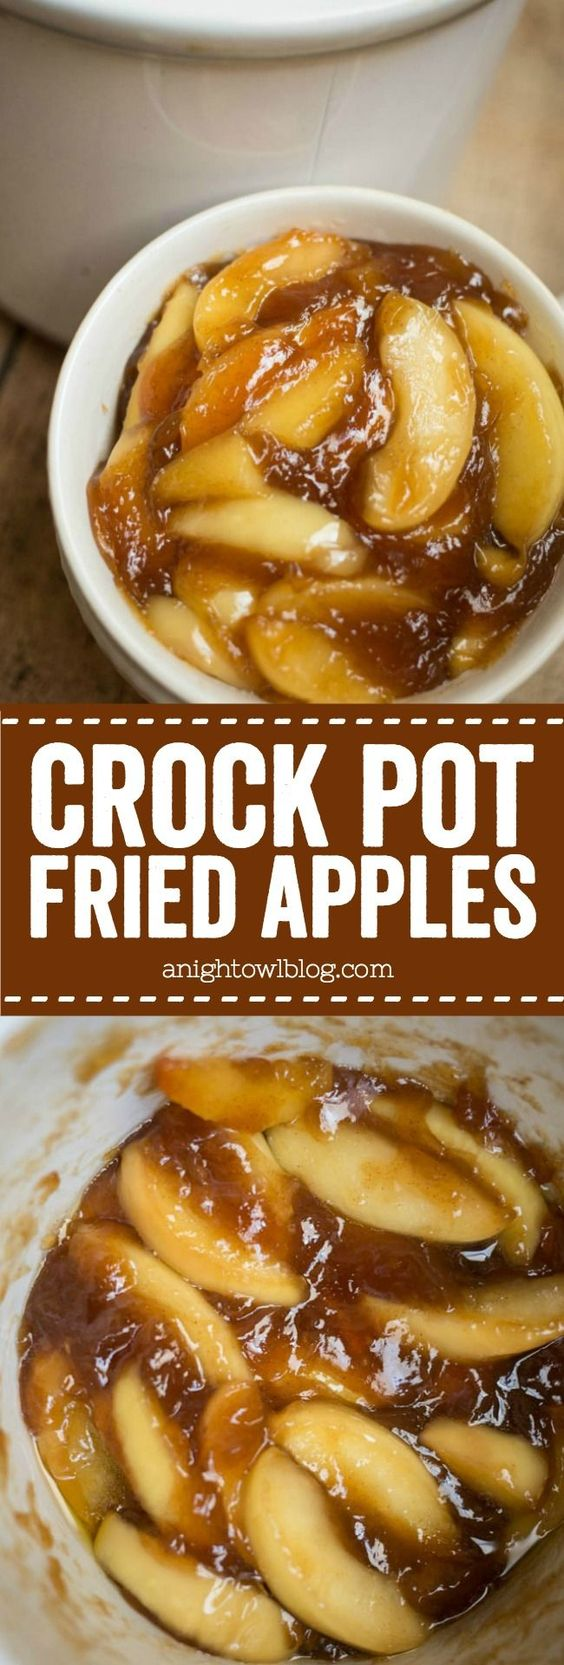 Easy Crock Pot Fried Apples.